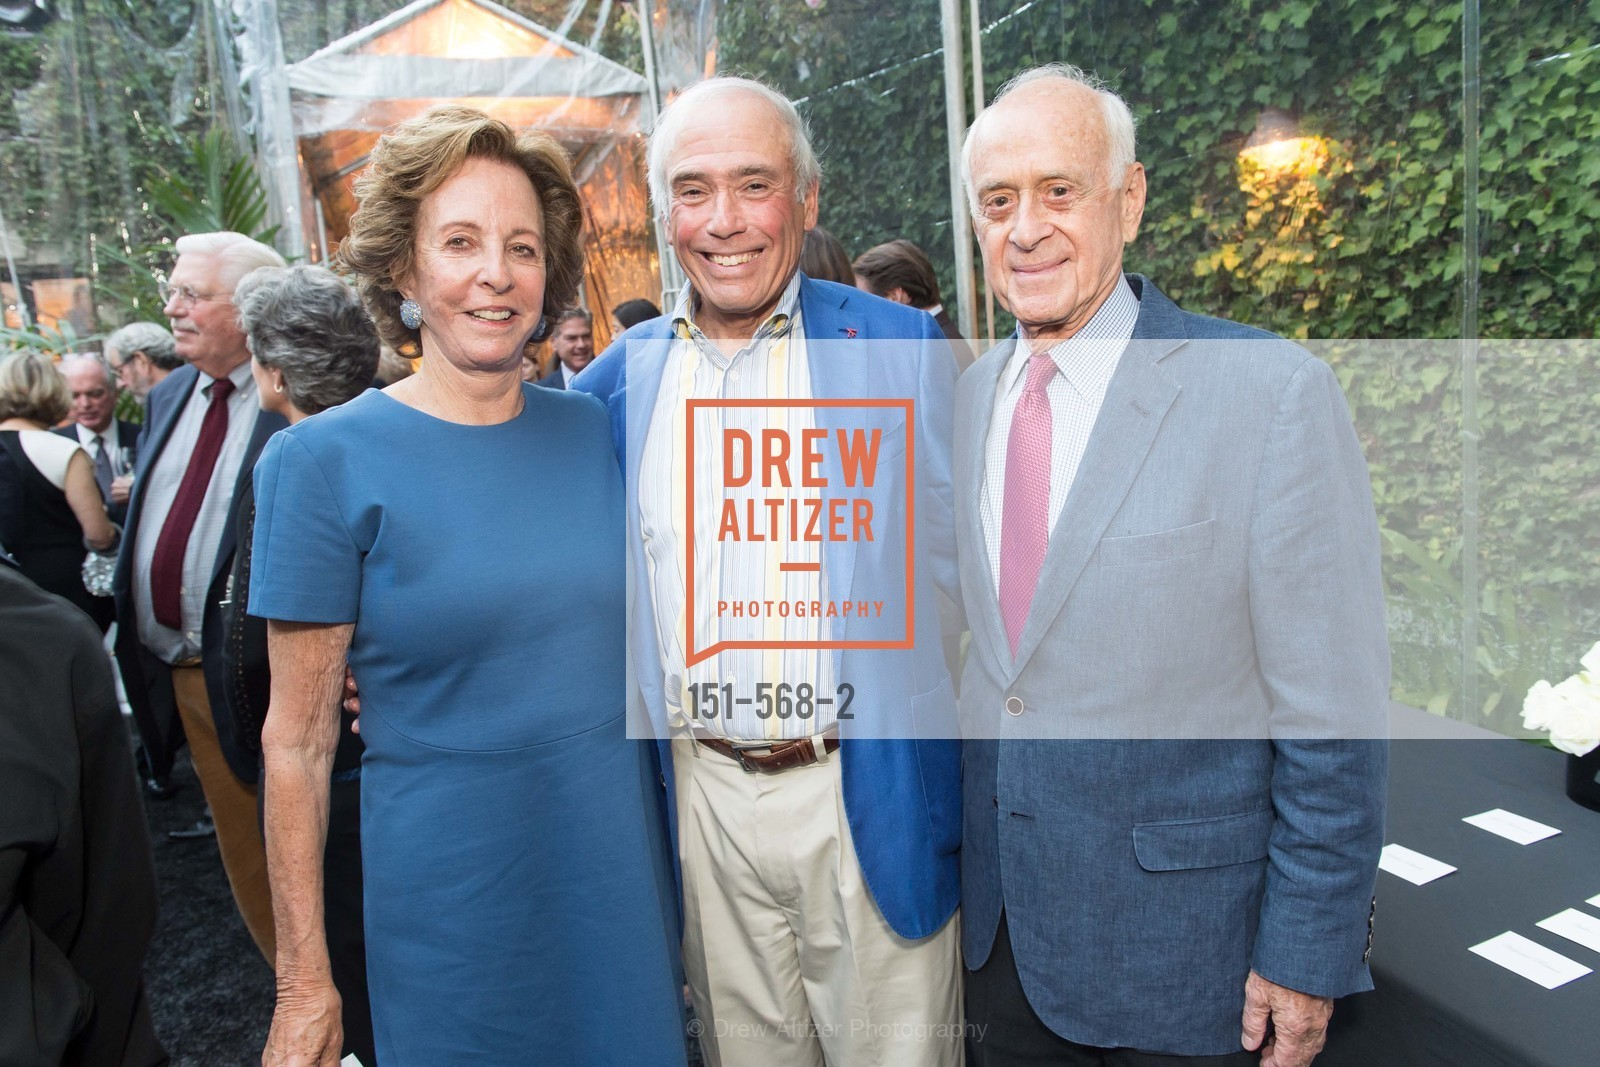 Frances Bowes, Jon Gruber, Bob Branston, SOTHEBY'S  Hosts a Private Viewing of Highlights from the Collection of MRS. PAUL MELLON, US, September 17th, 2014,Drew Altizer, Drew Altizer Photography, full-service event agency, private events, San Francisco photographer, photographer California